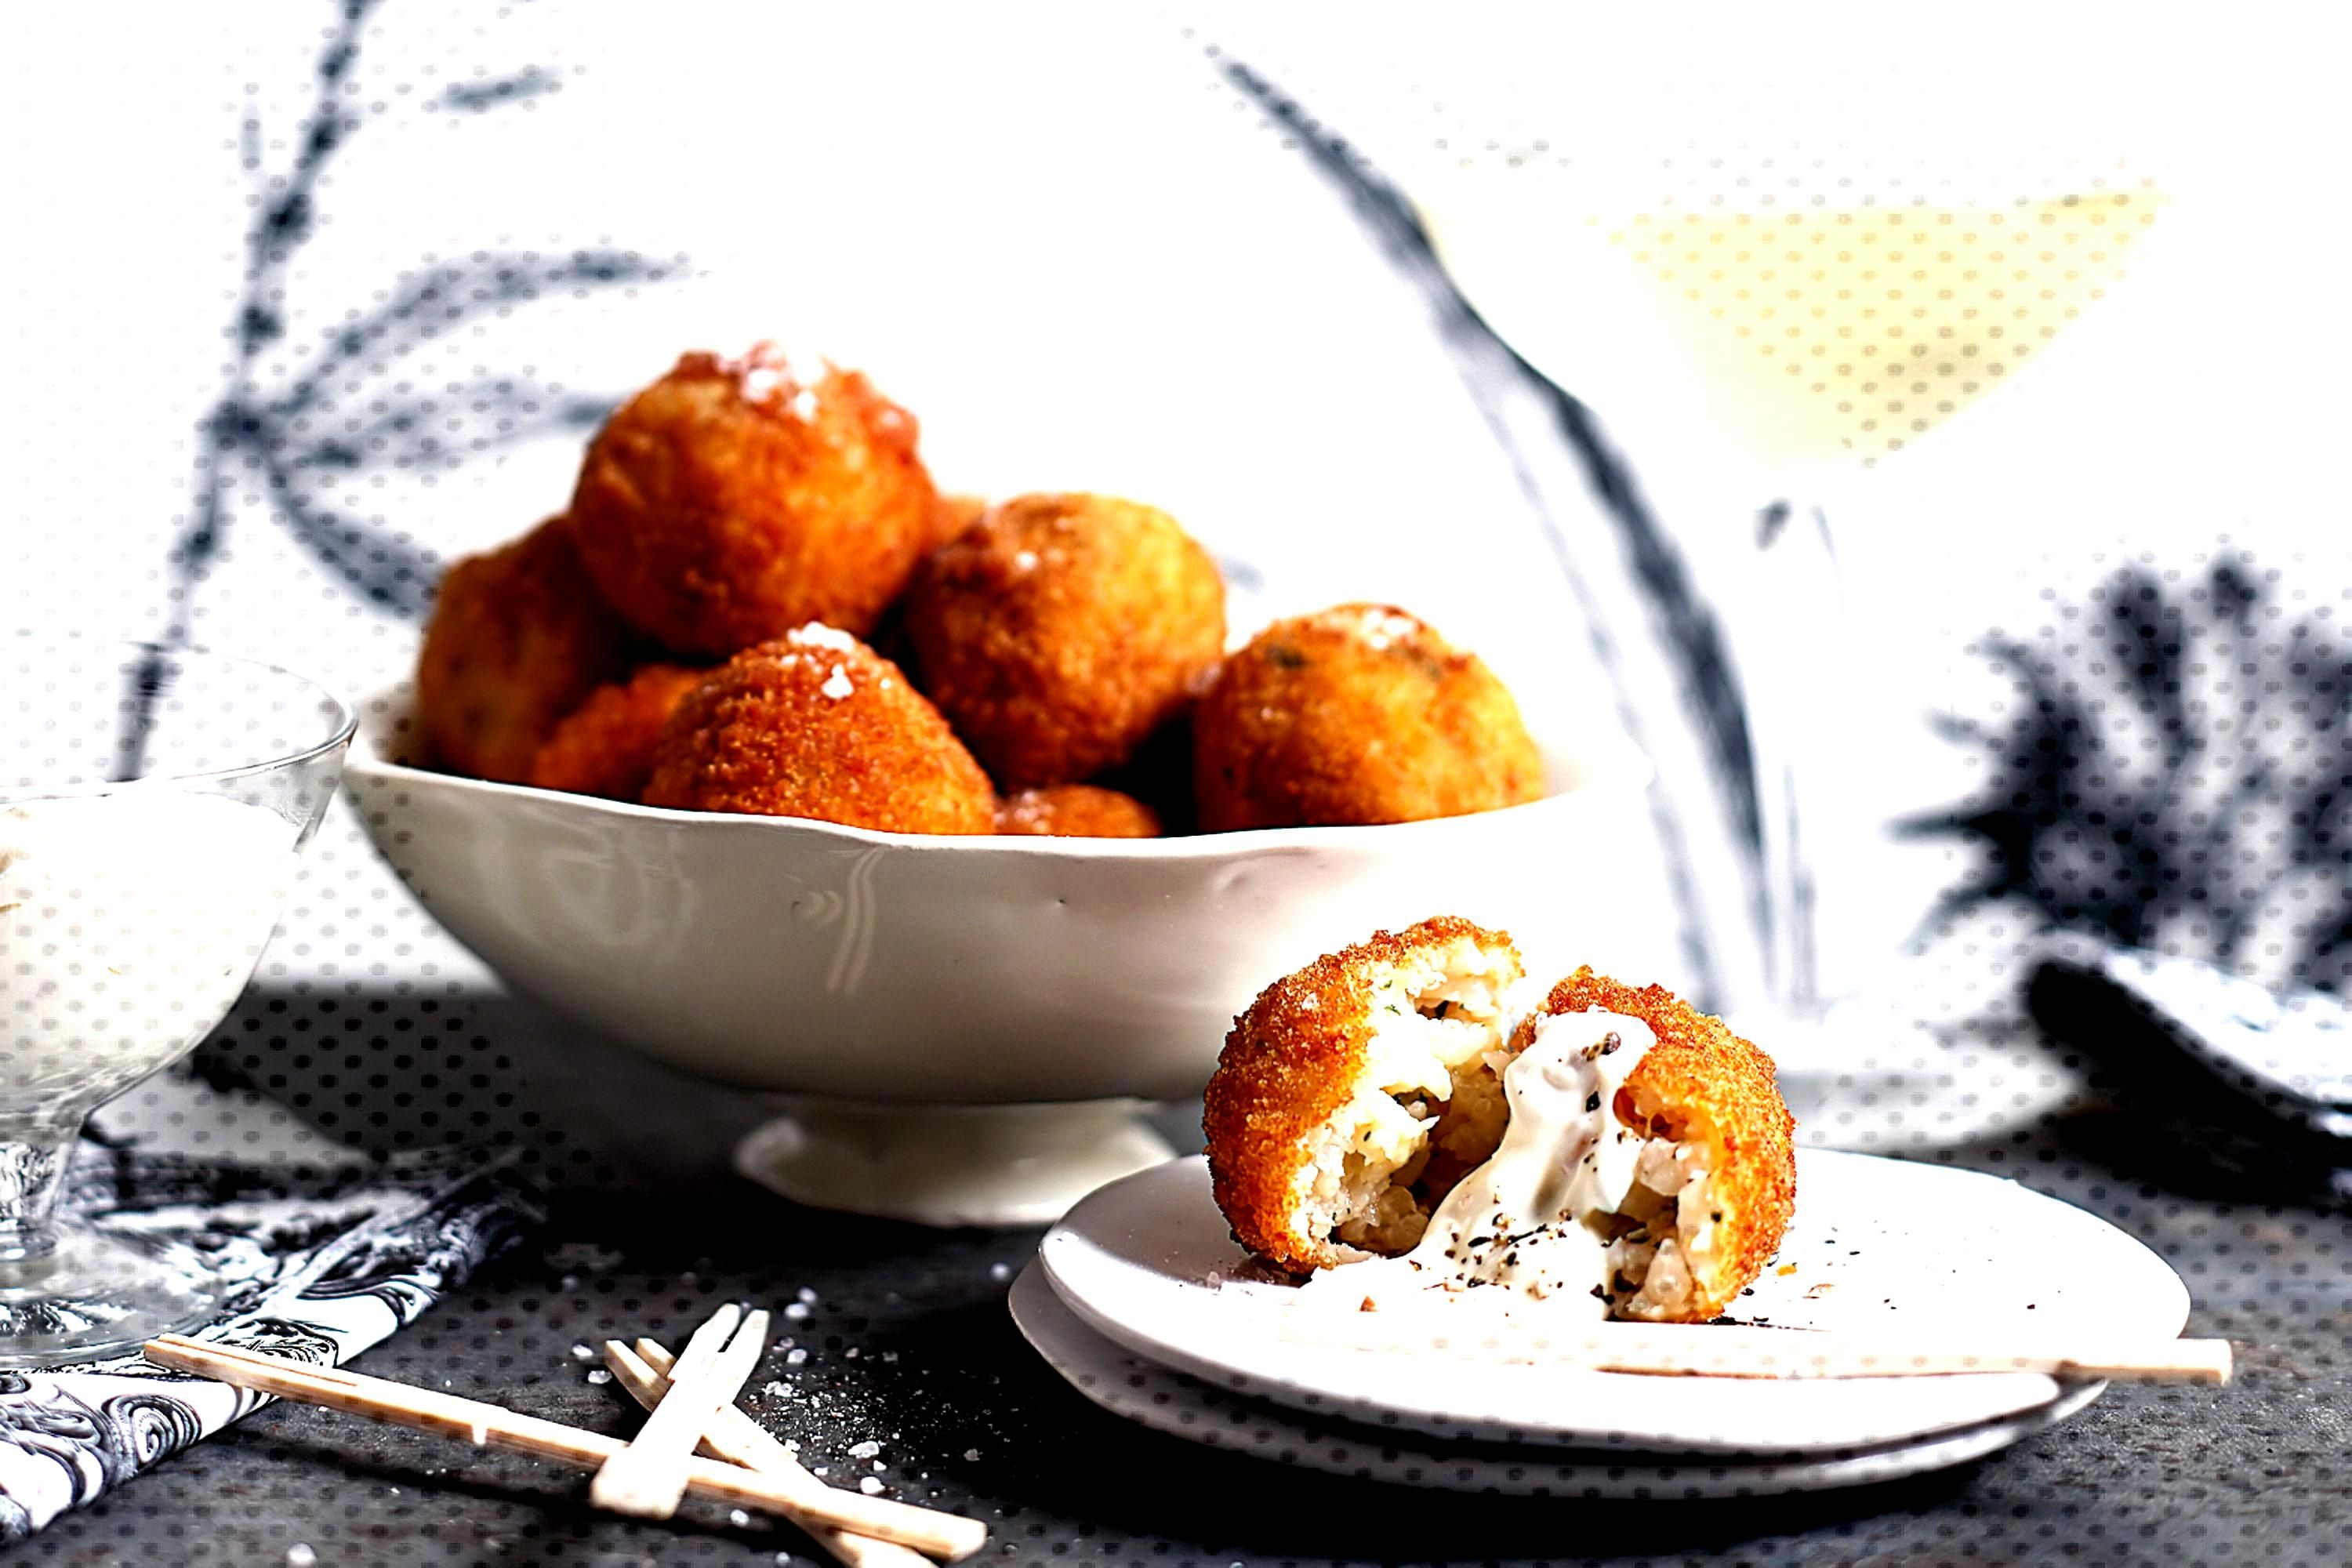 Prawn and lemon arancini -